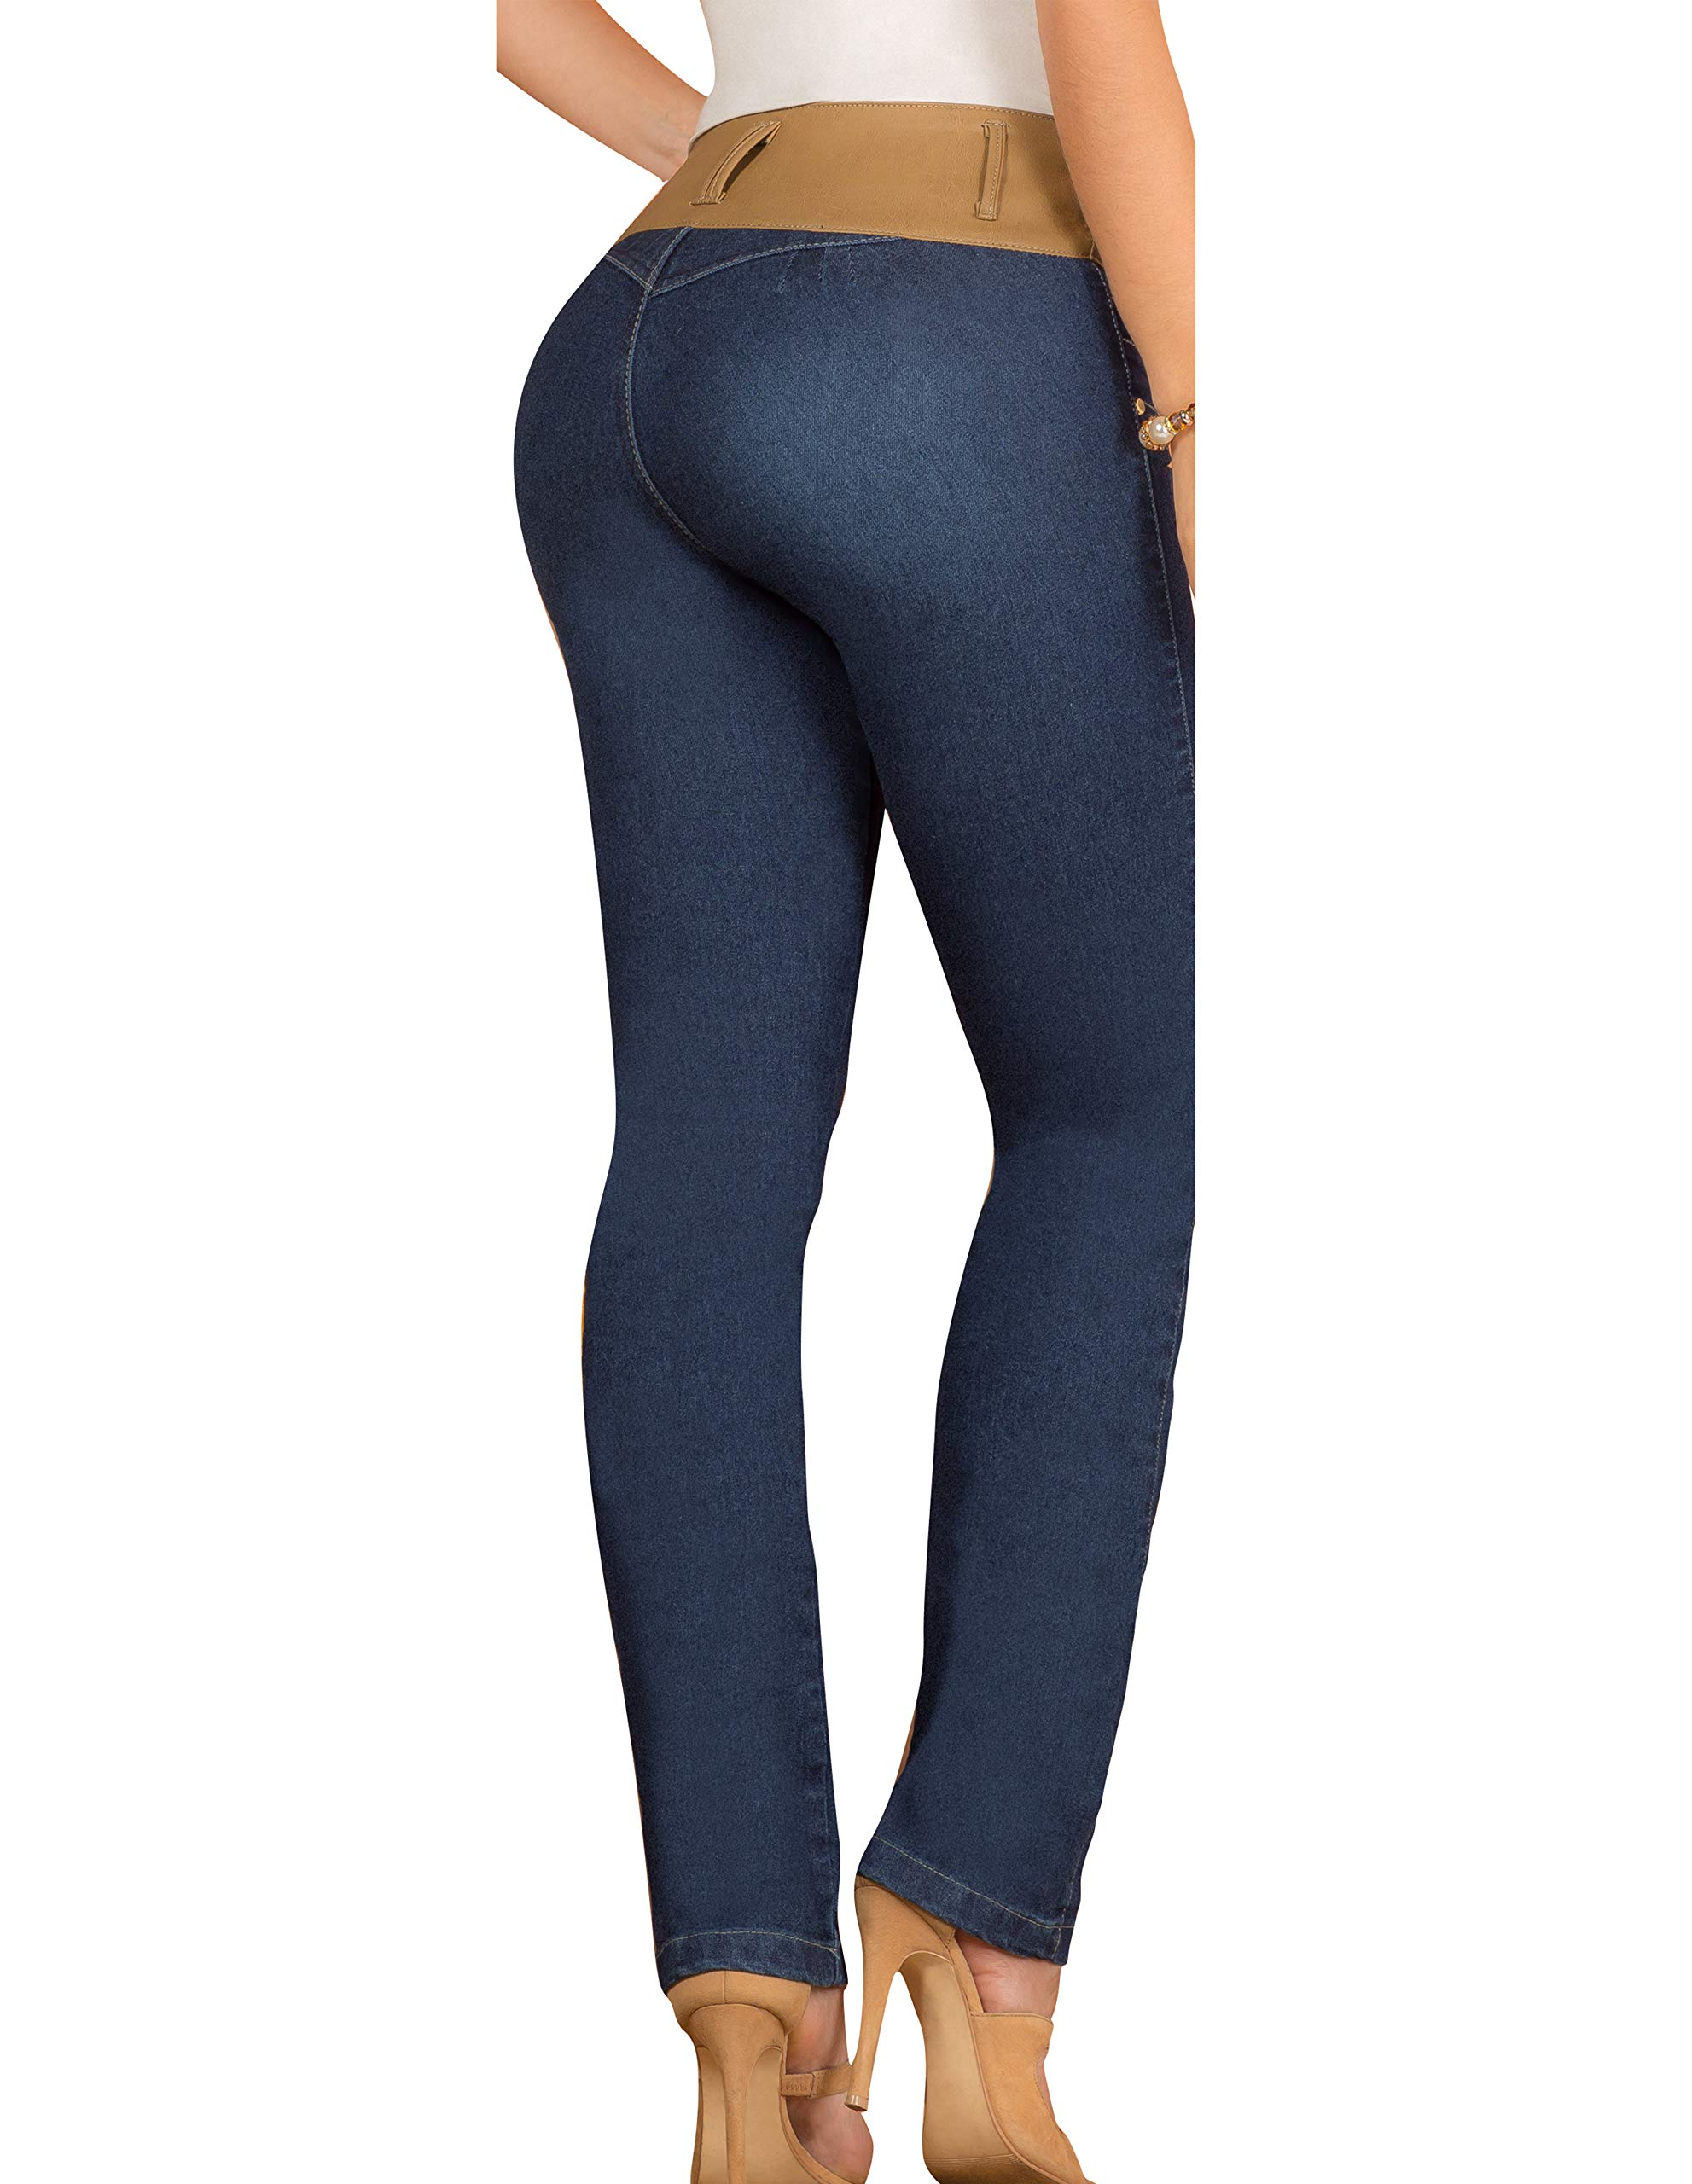 Aranza Pantalones Colombianos Levanta Cola Butt Lifting Colombian Jeans Boot Cut Buy Online In Costa Rica At Costarica Desertcart Com Productid 151254698